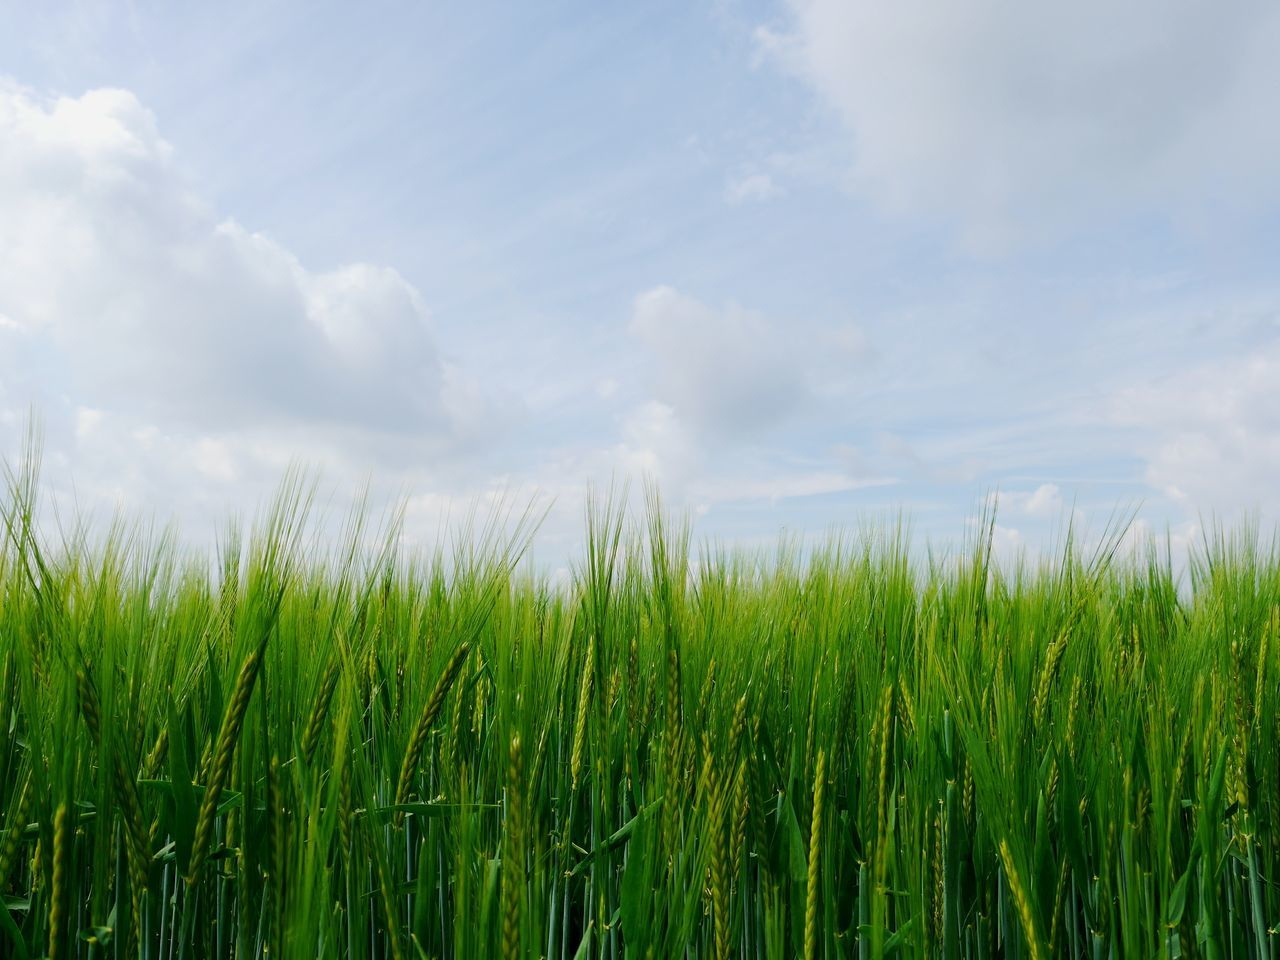 Spring days... The Great Outdoors - 2017 EyeEm Awards Growth Cereal Plant Nature Green Color Agriculture Crop  Rural Scene Day No People Field Outdoors Cloud - Sky Beauty In Nature Grass Sky Freshness Close-up BYOPaper! Live For The Story